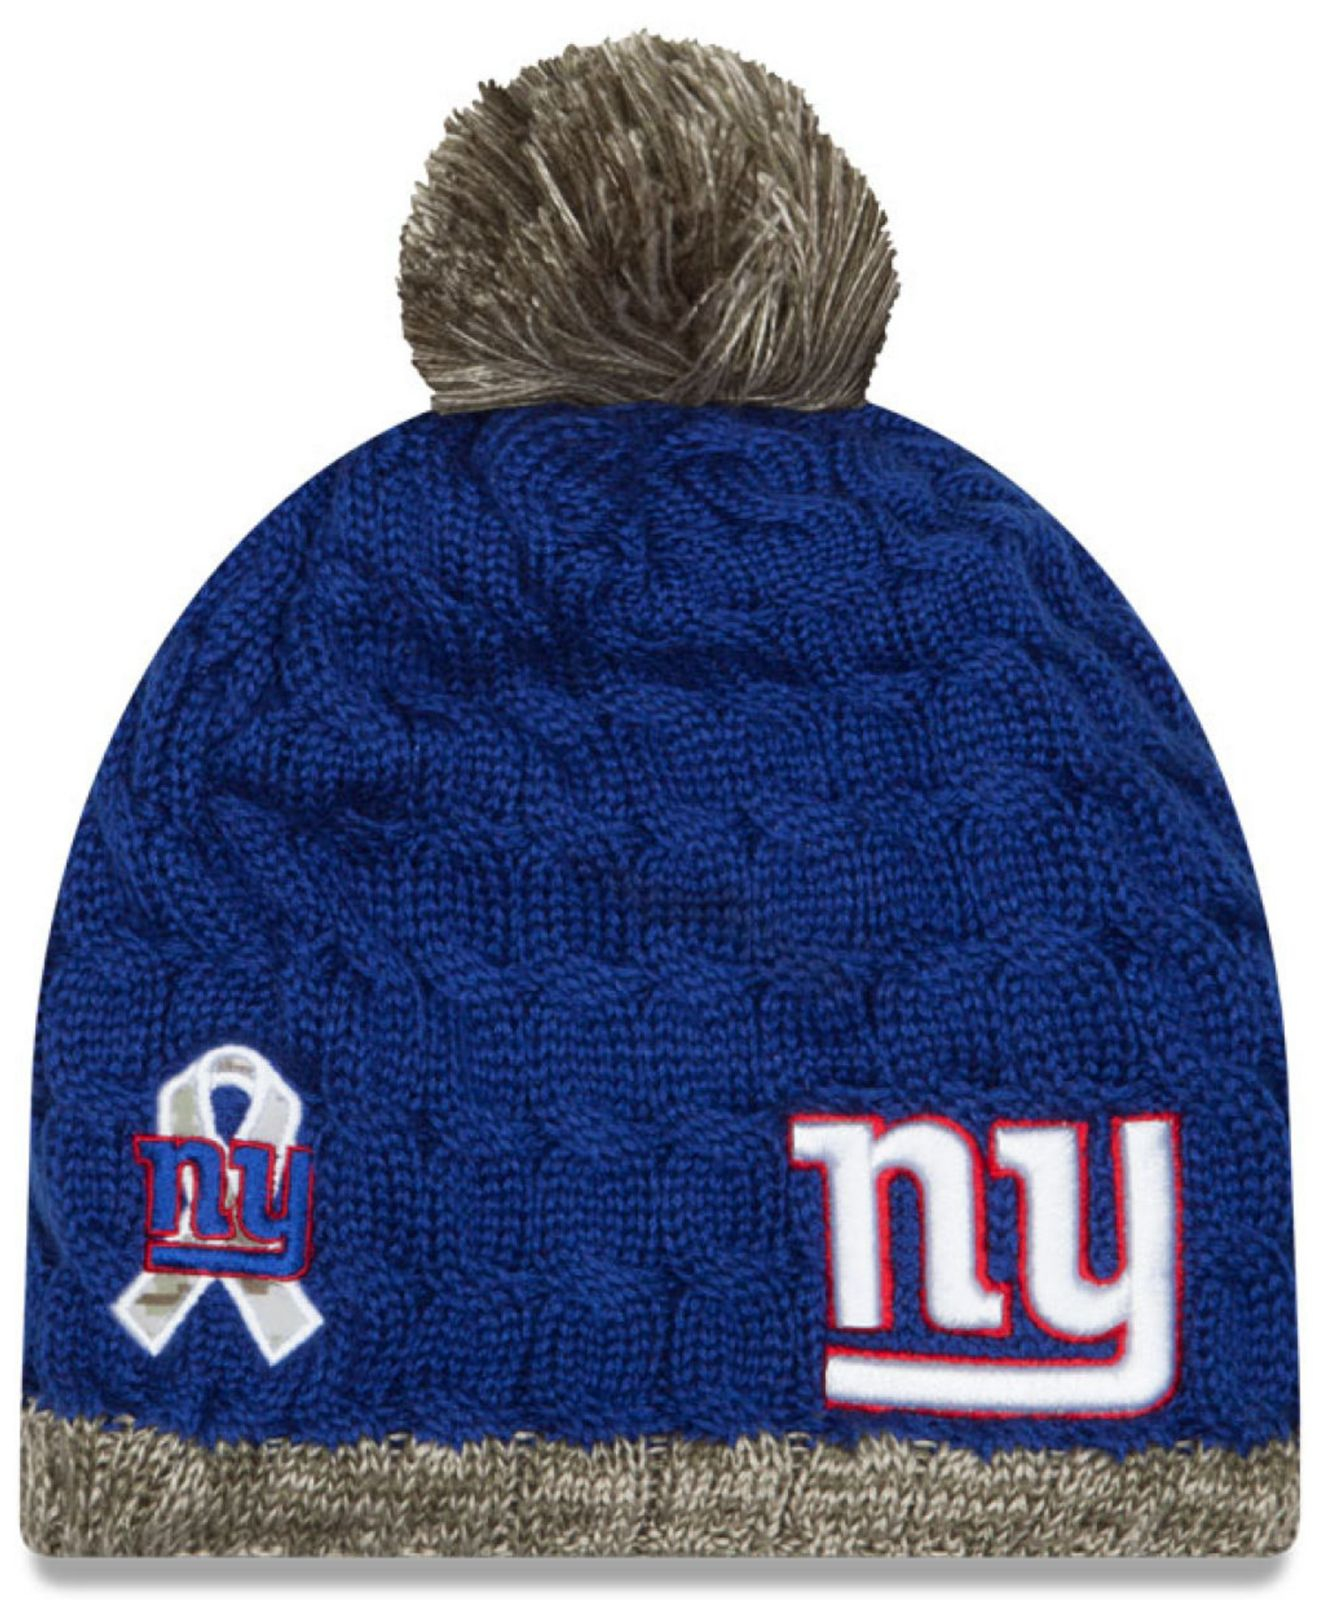 Lyst - KTZ Women s New York Giants Salute To Service Knit Hat for Men b3c7cfa557